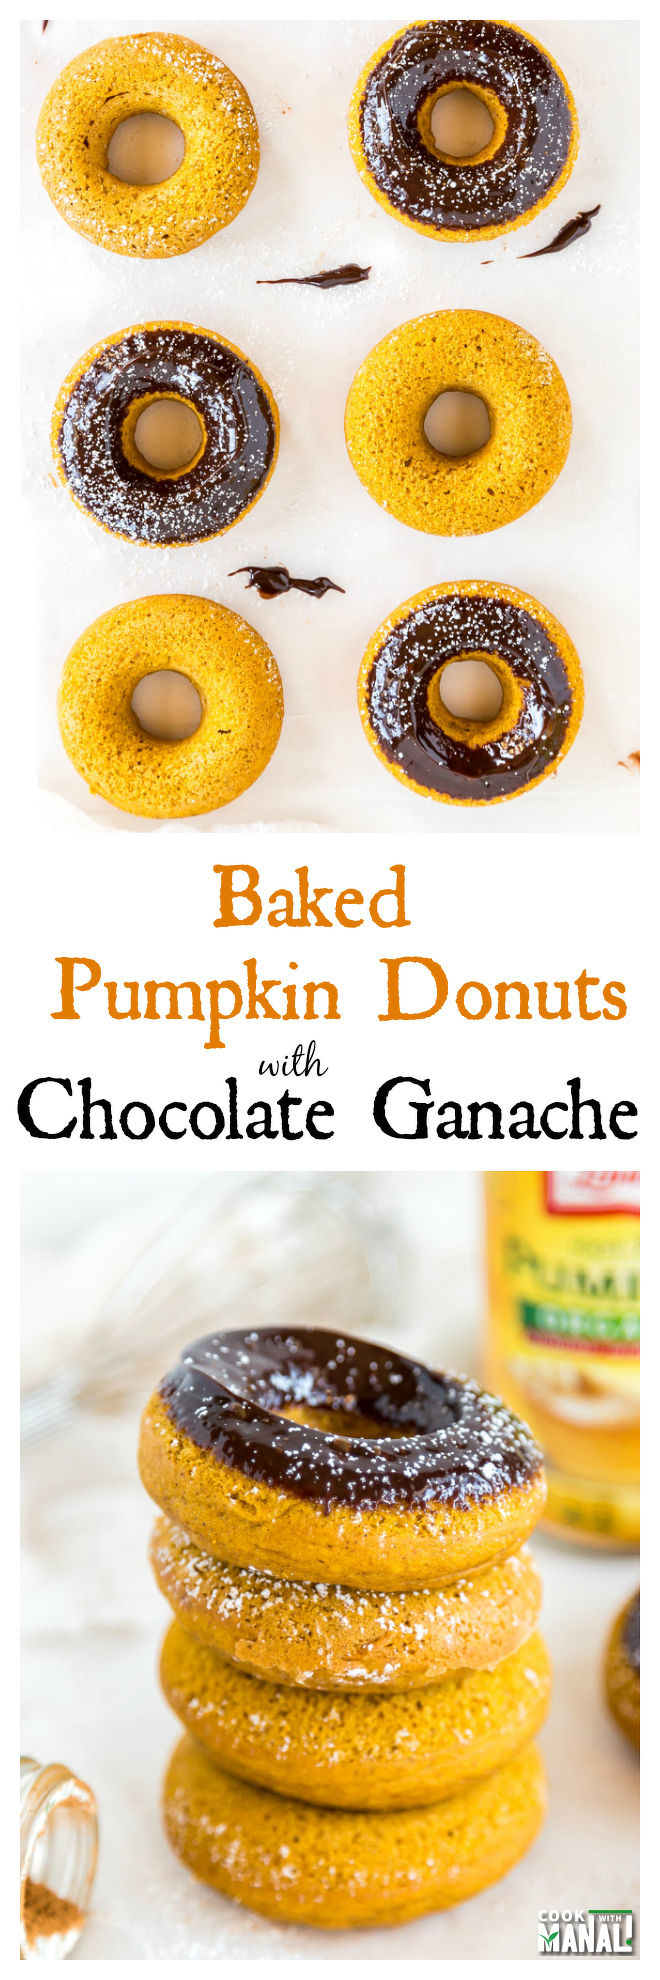 Baked Pumpkin Donuts with Chocolate Ganache collage